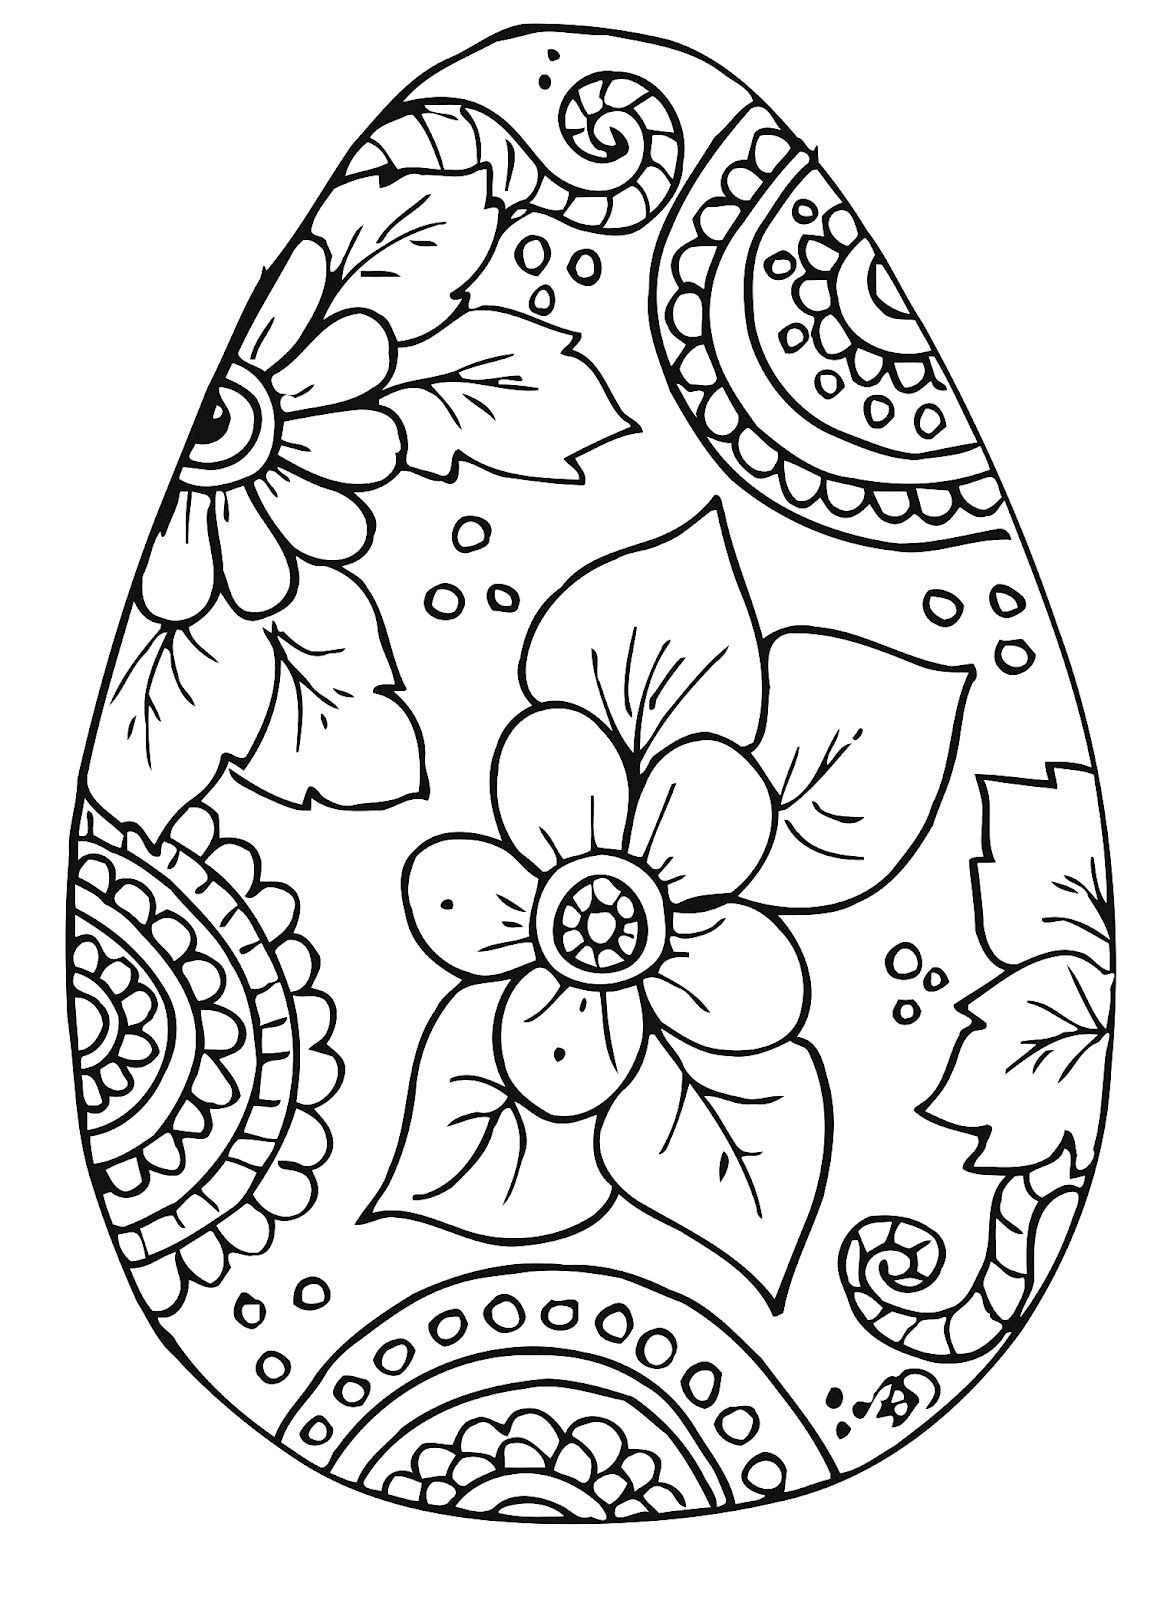 B.d.designs: Free Coloring Page #easter | Coloring Pages | Pinterest - Coloring Pages Free Printable Easter